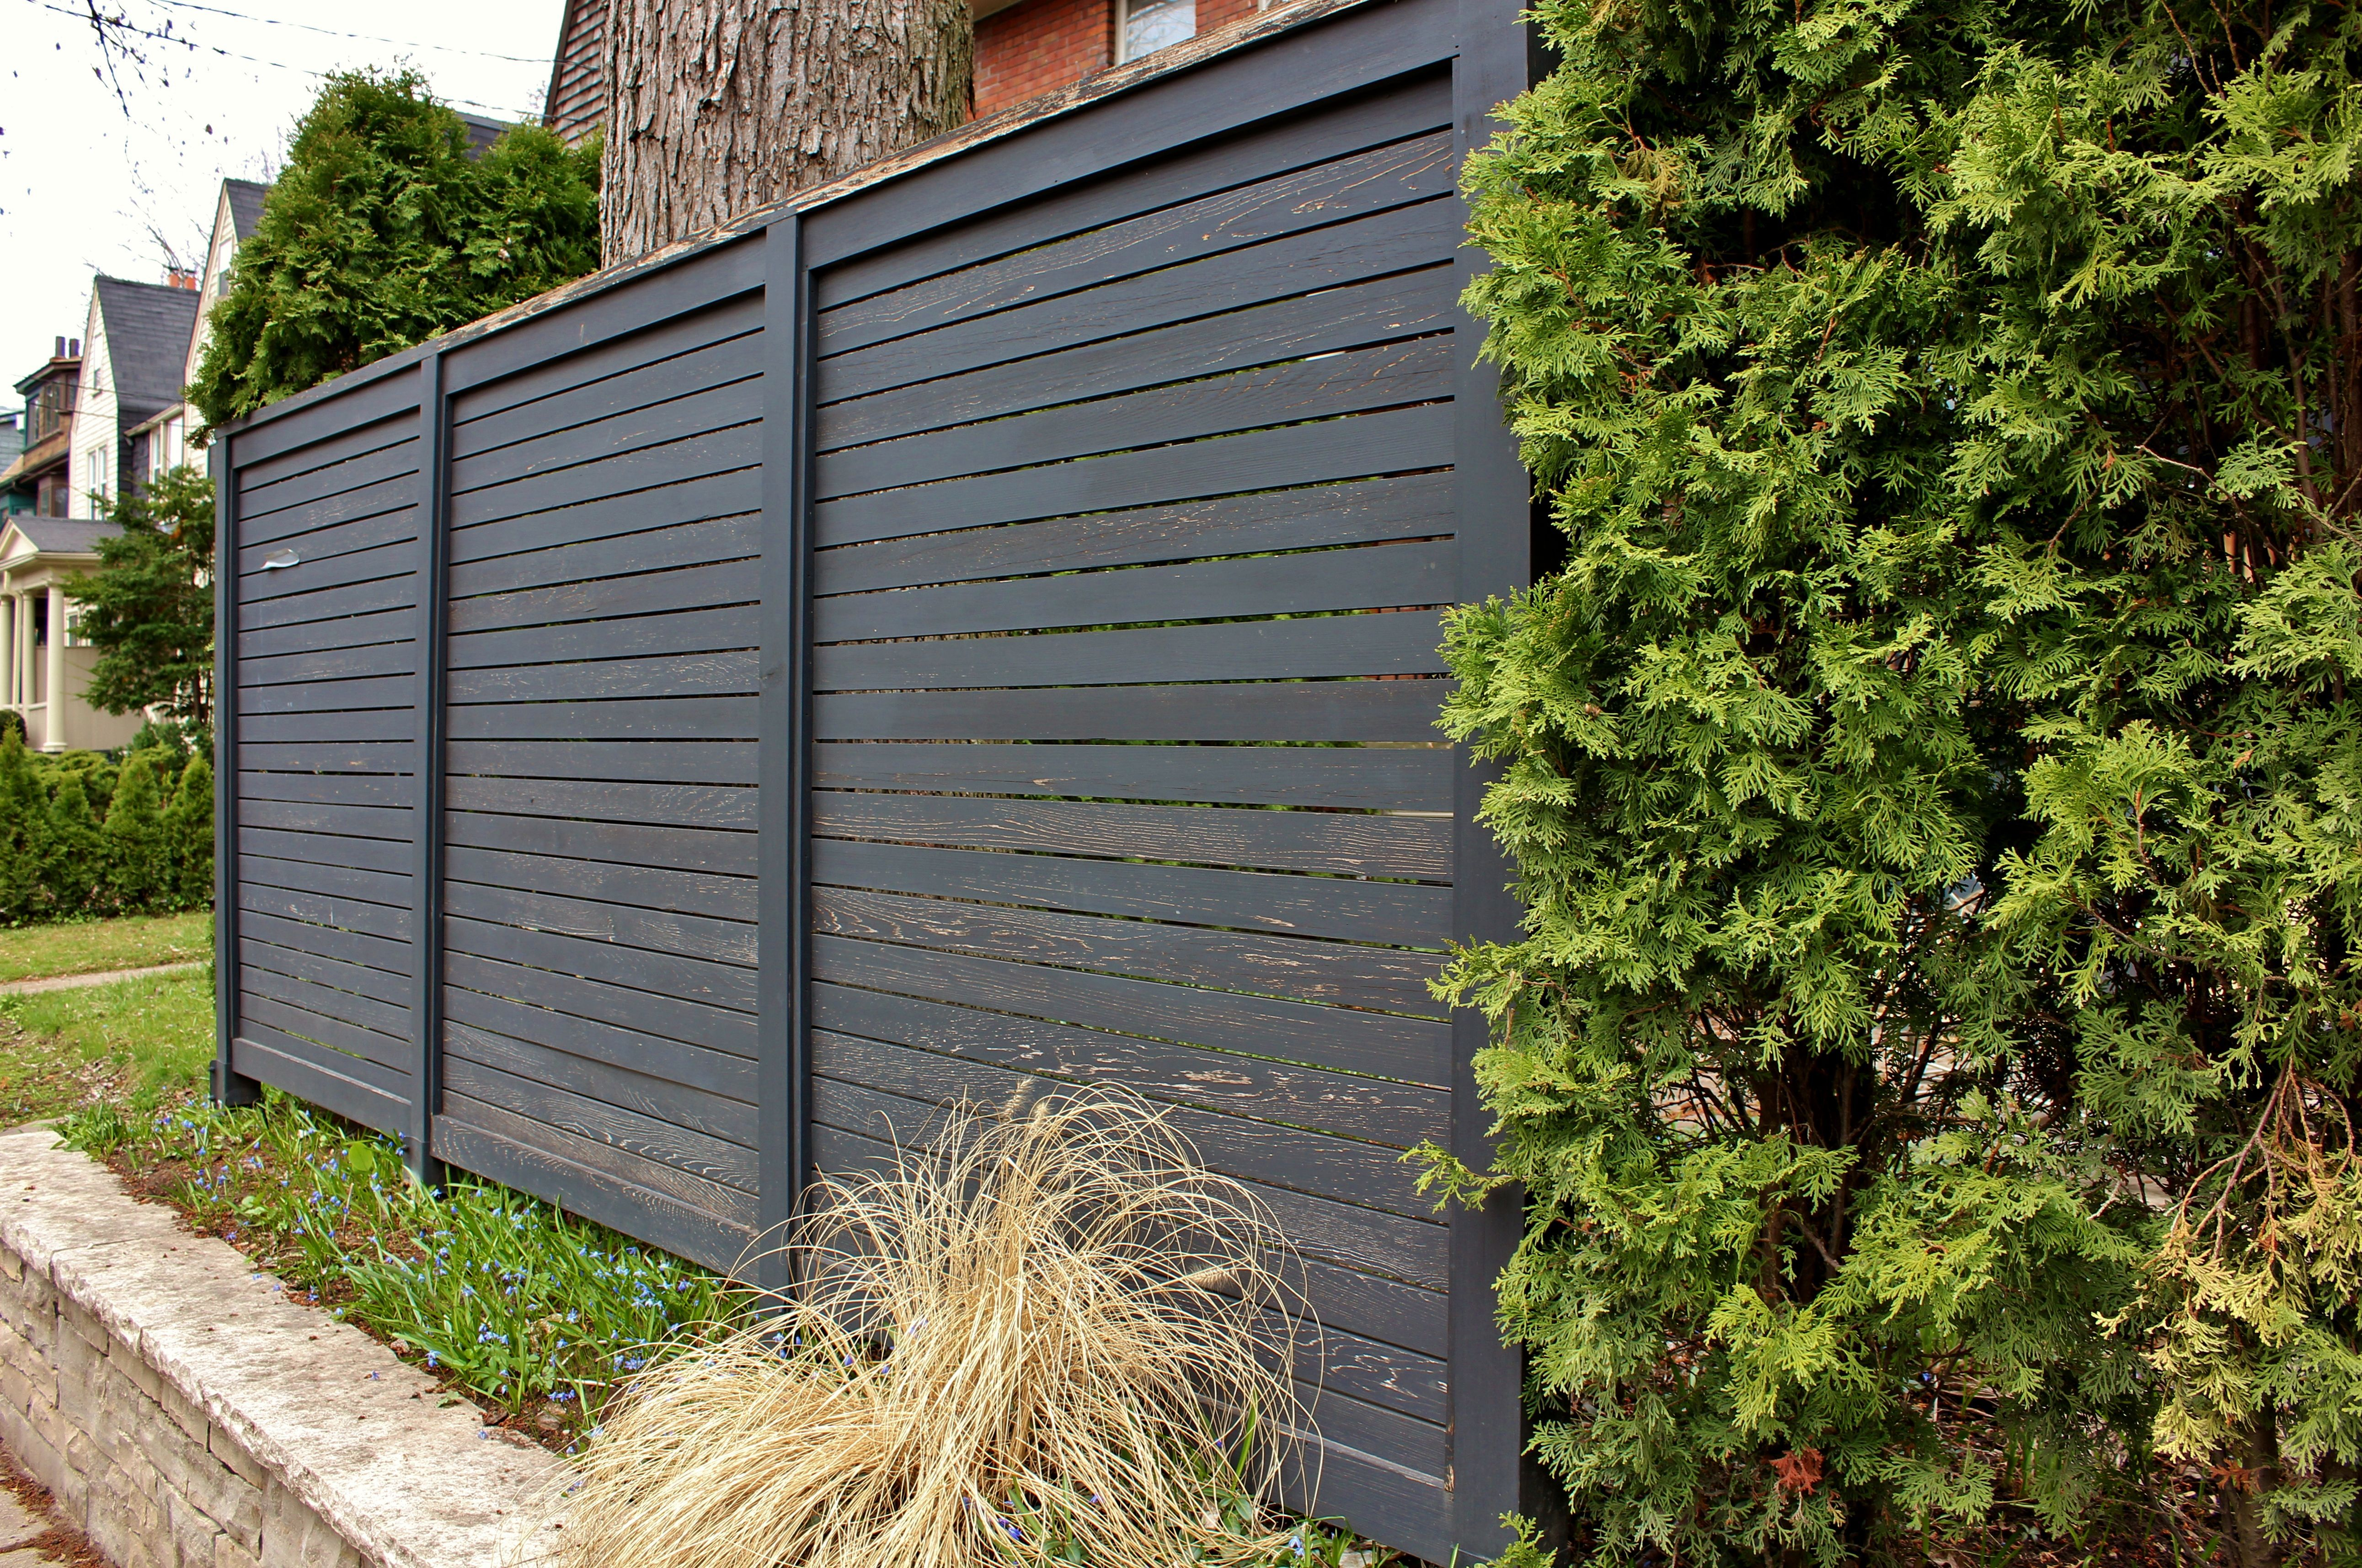 56 cheap diy fence ideas for your beautiful garden diy fence 56 cheap diy fence ideas for your beautiful garden baanklon Images